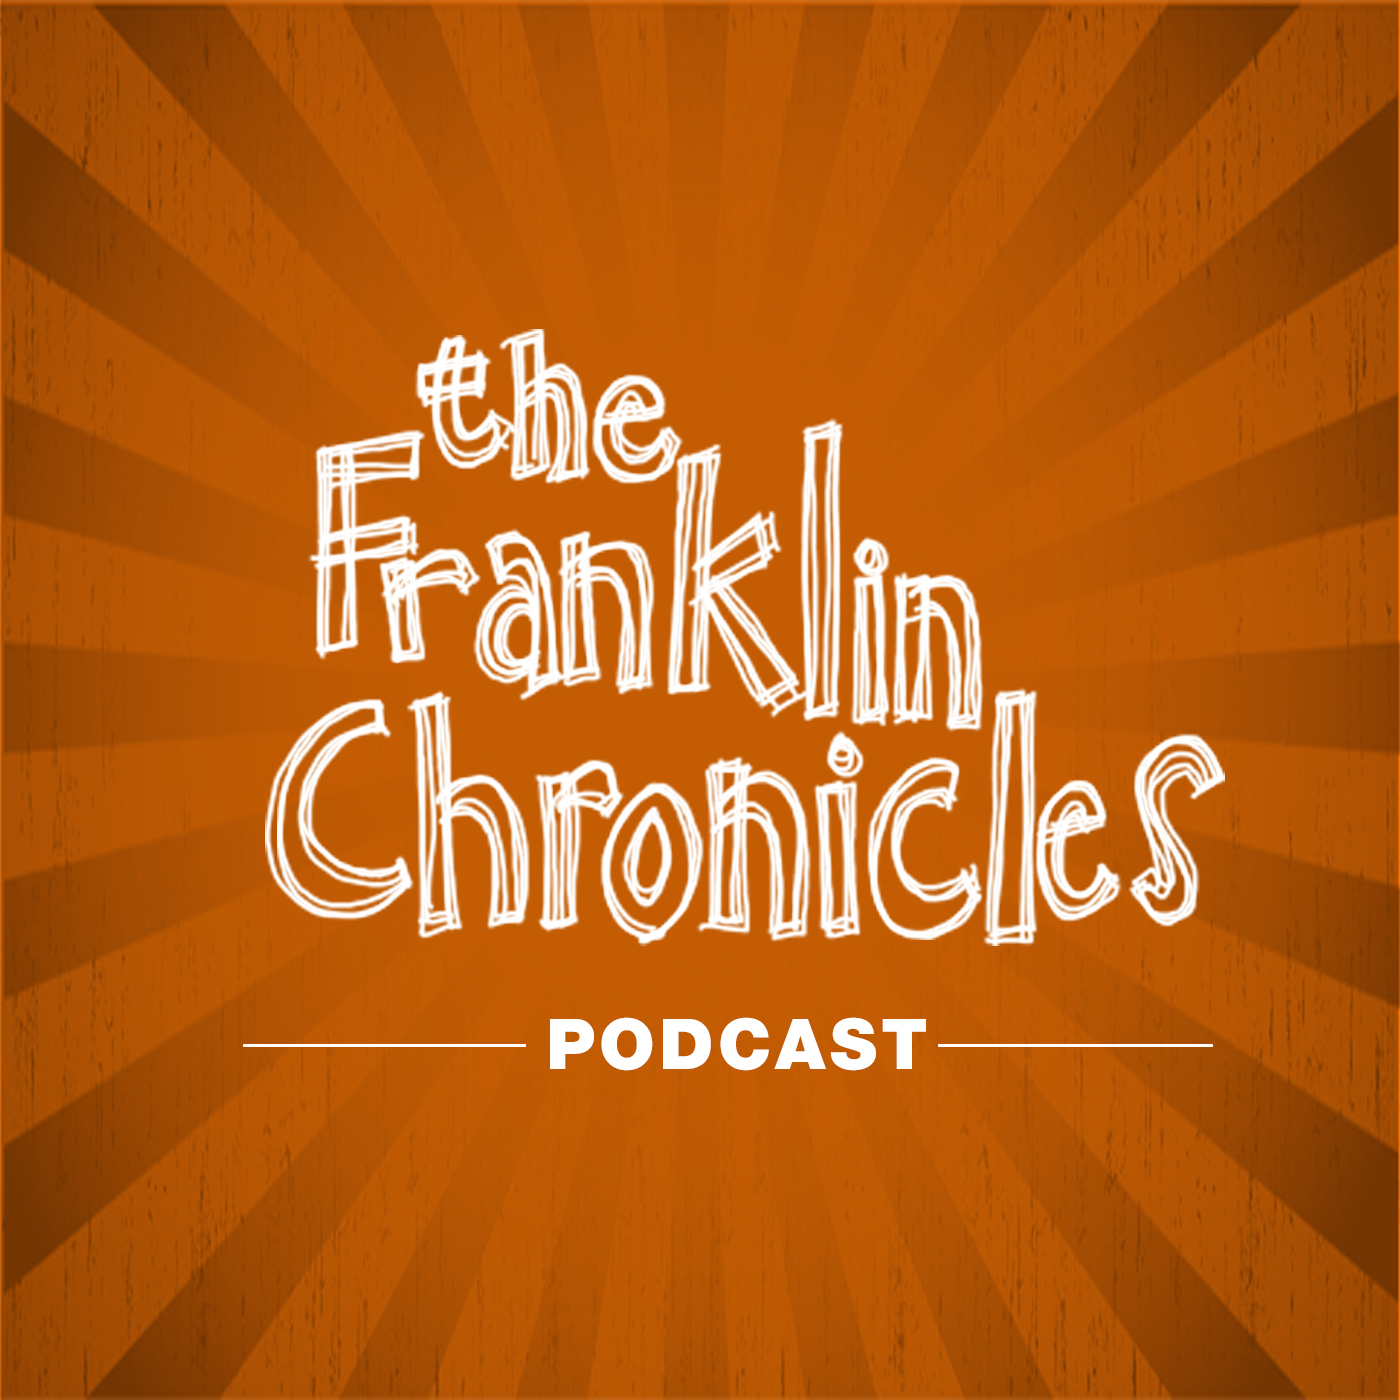 franklinpodcast2018.jpg